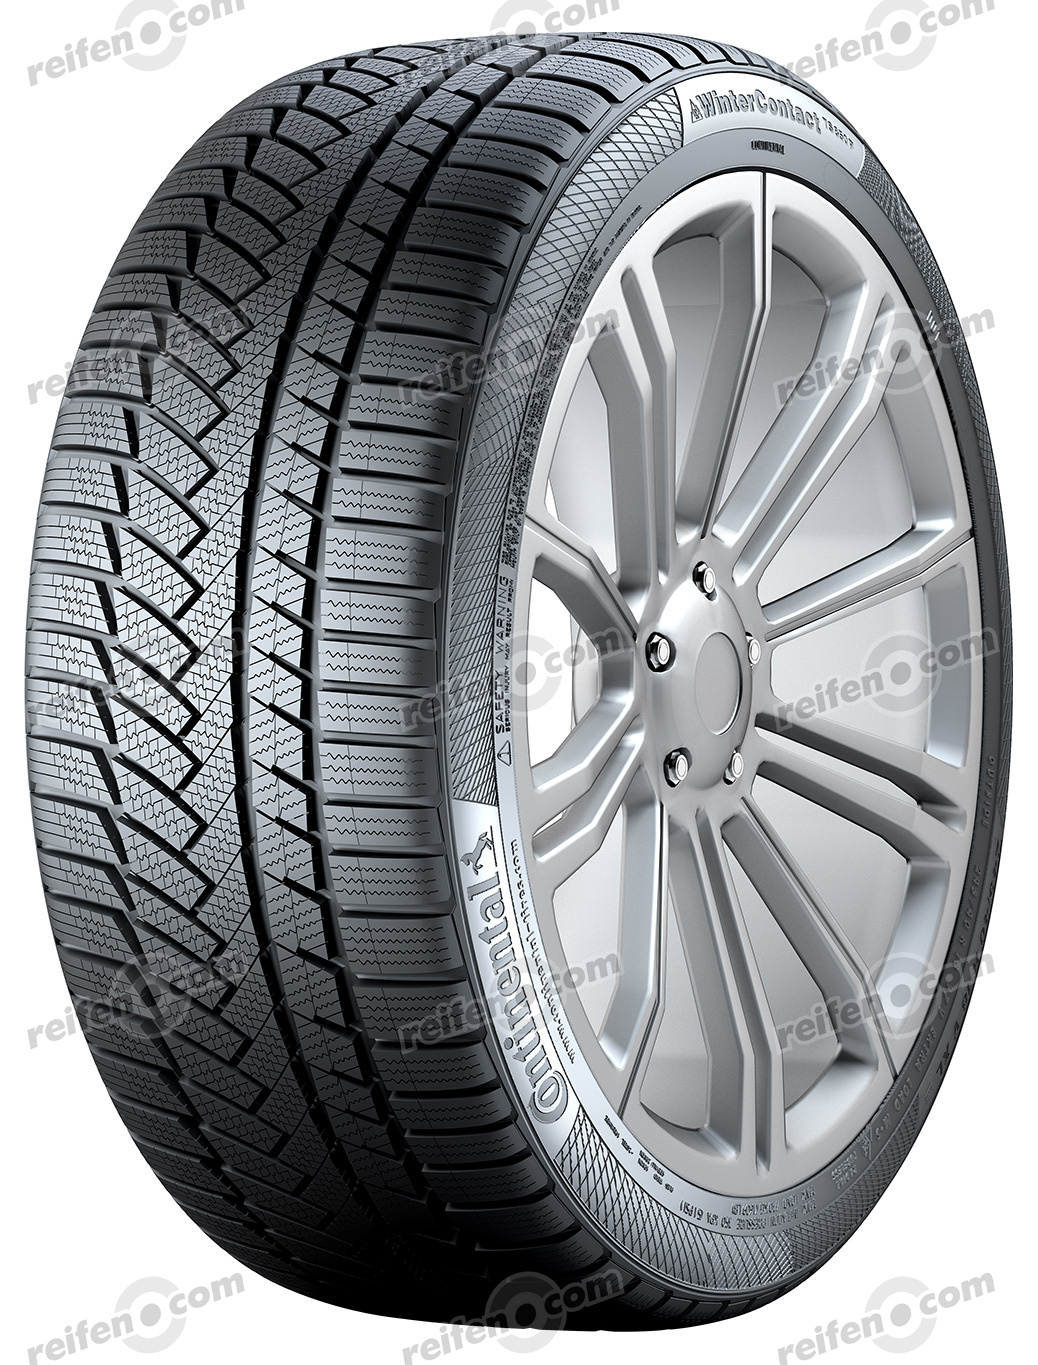 255/60 R18 108V WinterContactTS850 P SUV MGT FRM+S  WinterContactTS850 P SUV MGT FRM+S